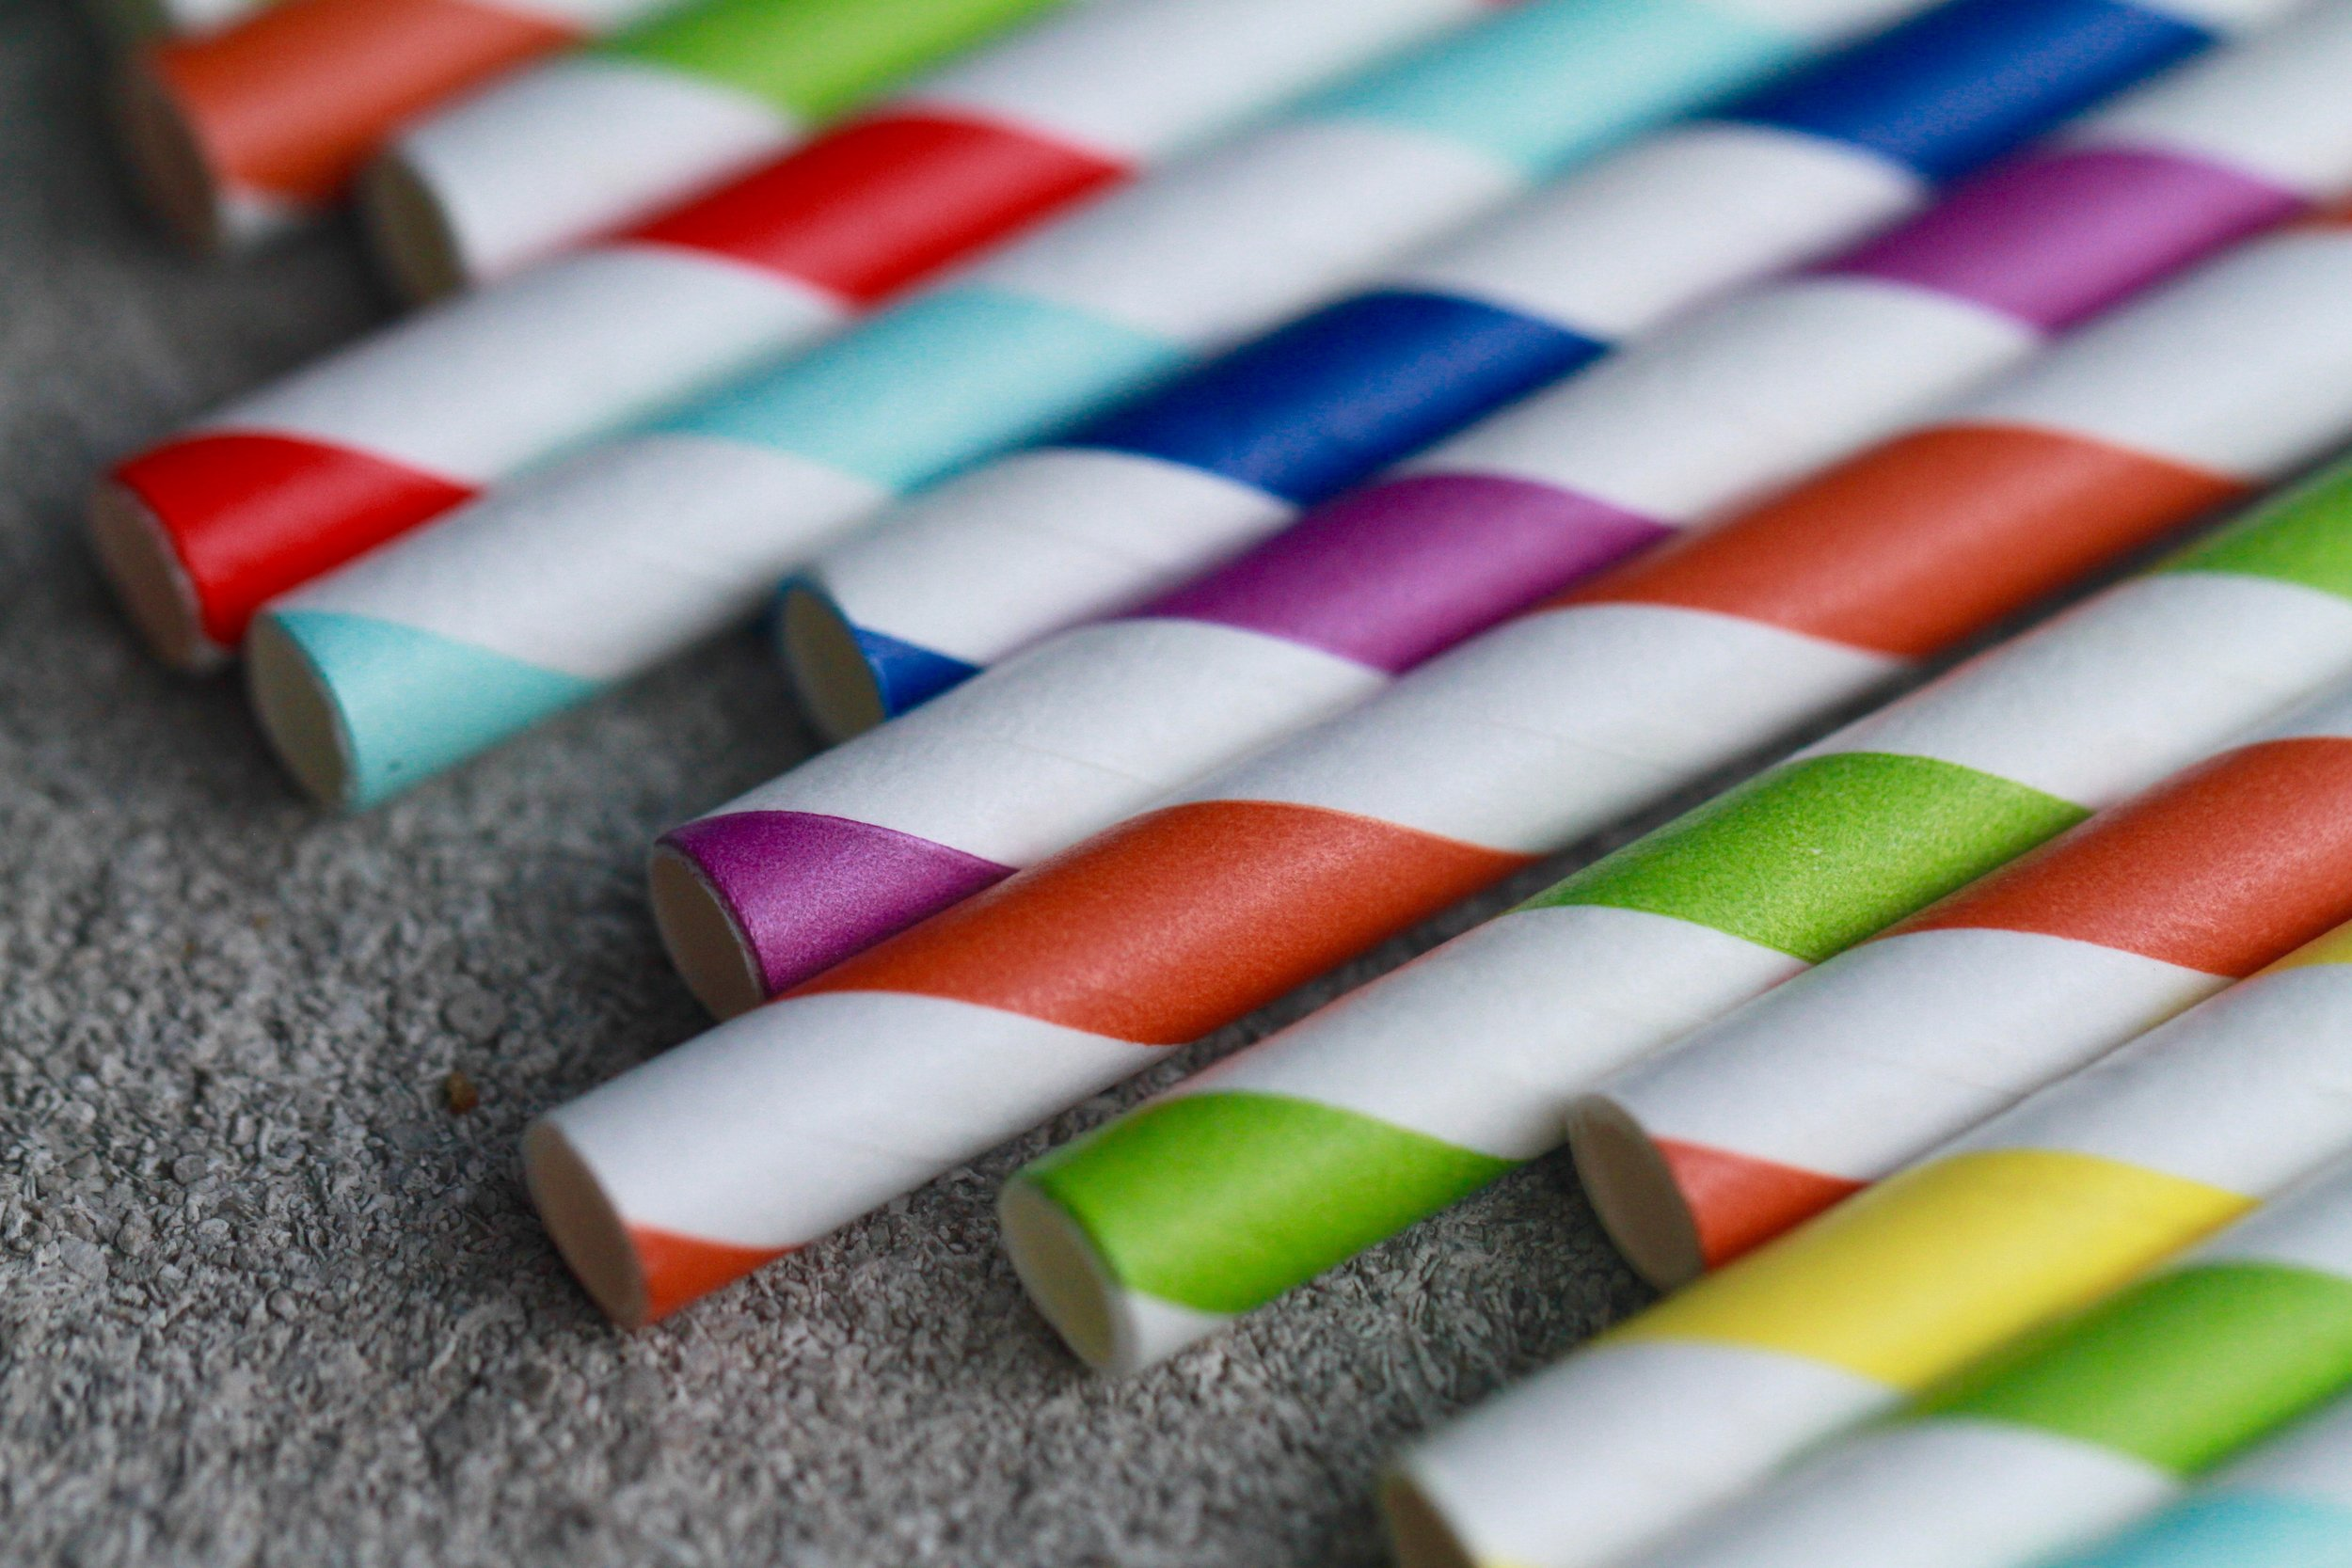 5. The Little Things - It's the little things in life that make us happy; but also make the planet happy too. Like when there are some blankets scattered about for when it gets cold, or the fact that your straw is made of paper and not pesky ocean-killing plastic. Check out this great Pinterest board for some more sustainable party ideas!